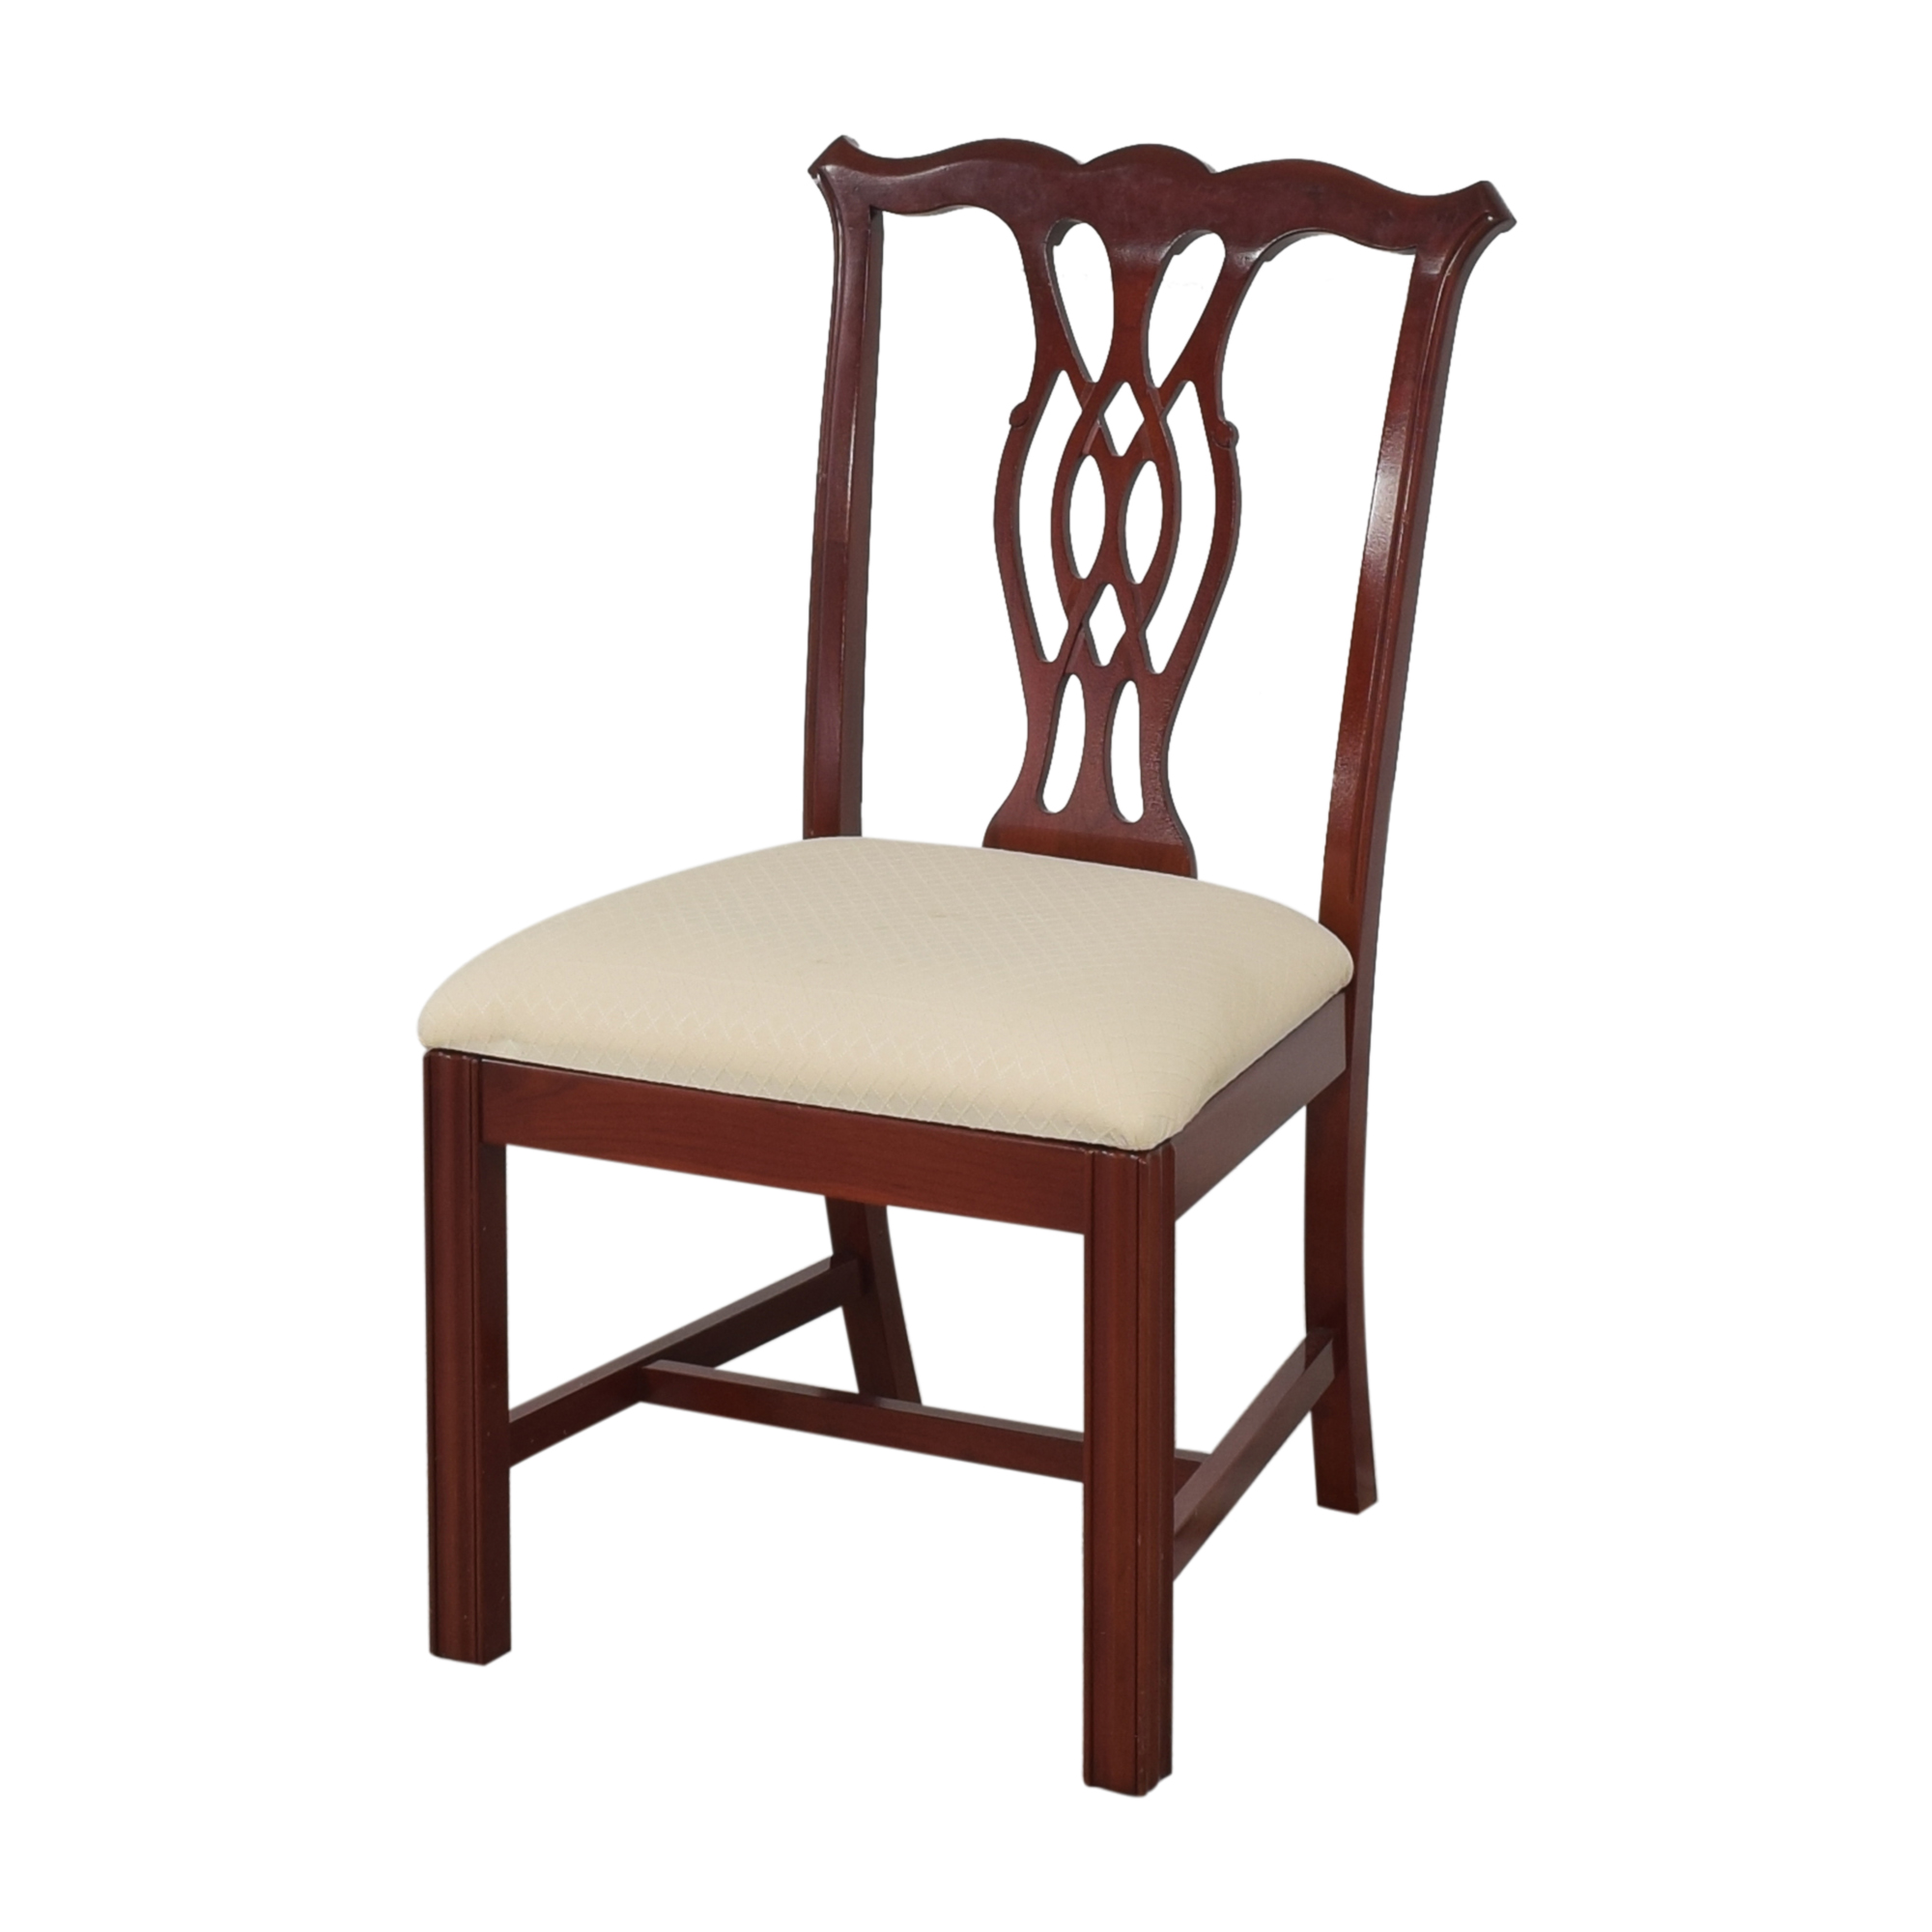 The Colonial Furniture Company The Colonial Furniture Company Chippendale-Style Dining Chairs used